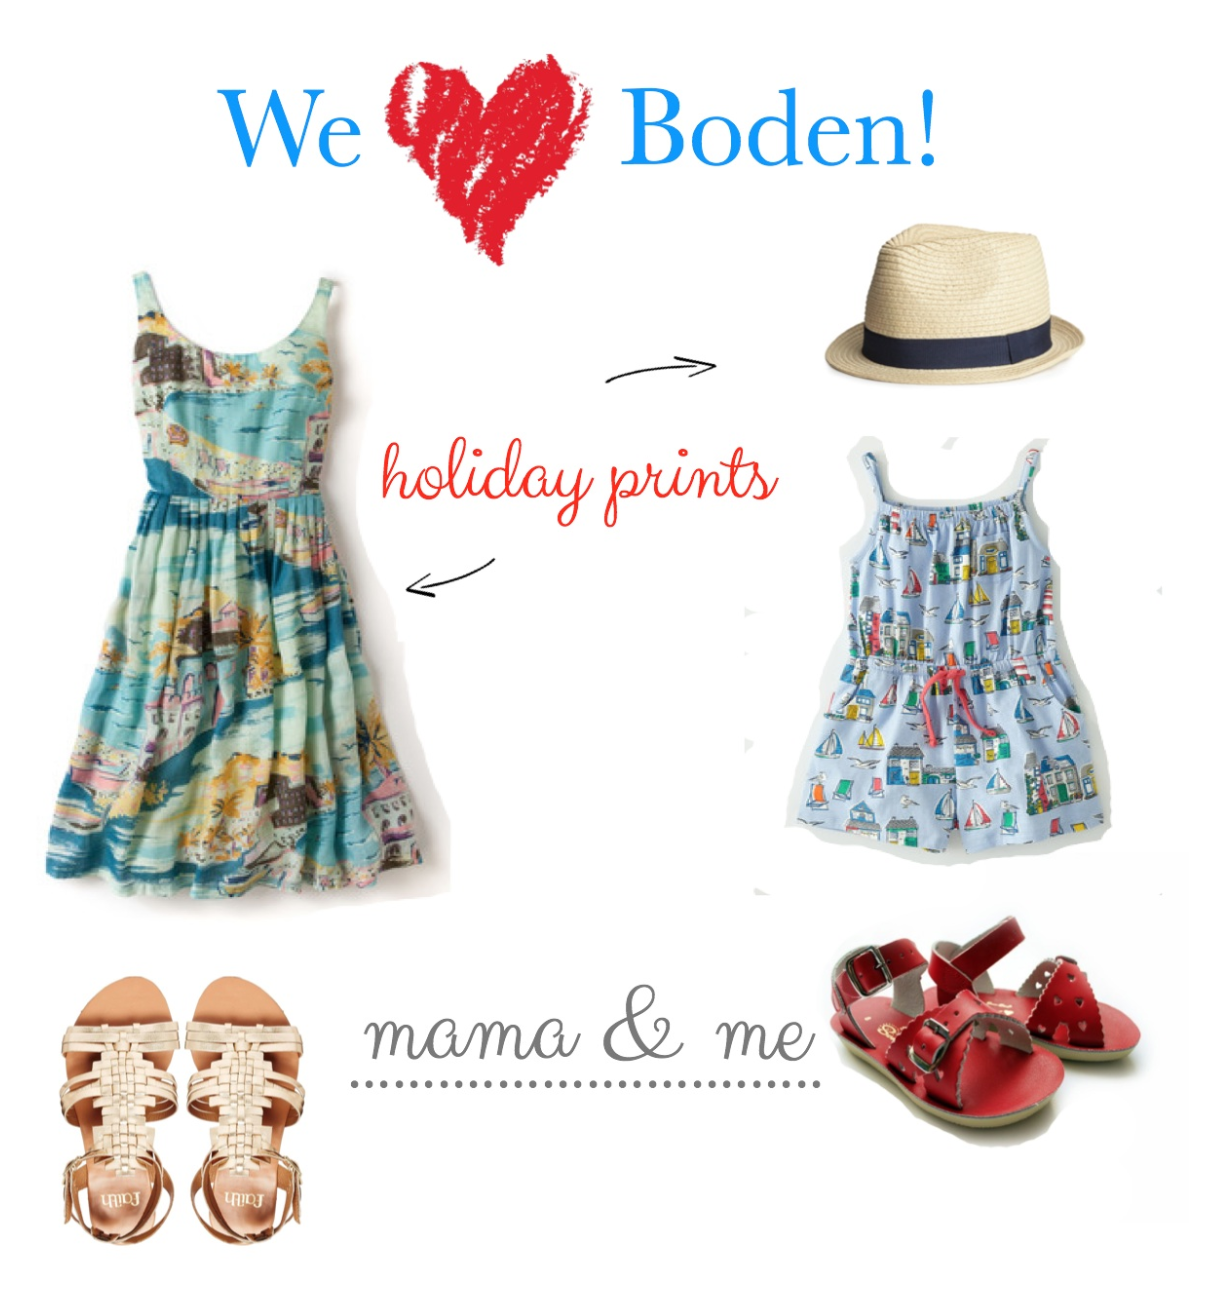 Fab Boden holiday prints for a mama & me day out! | mama and me | fashion | style | mamasVIB | boden | nanacy dress | riveria print | seaside print | harbour print | holiday clothes | boden mini | faith } office shoes | marks & Spencer | autograph skirt | cath kidston | digital wallpaper | days out | blogger | mummy blogger | boden catalogue | piontelle cardigan | kids fashion | mama fashion | boden clothes | mumsy | mummy | donna air | donna air in boden dress | mamasVIB